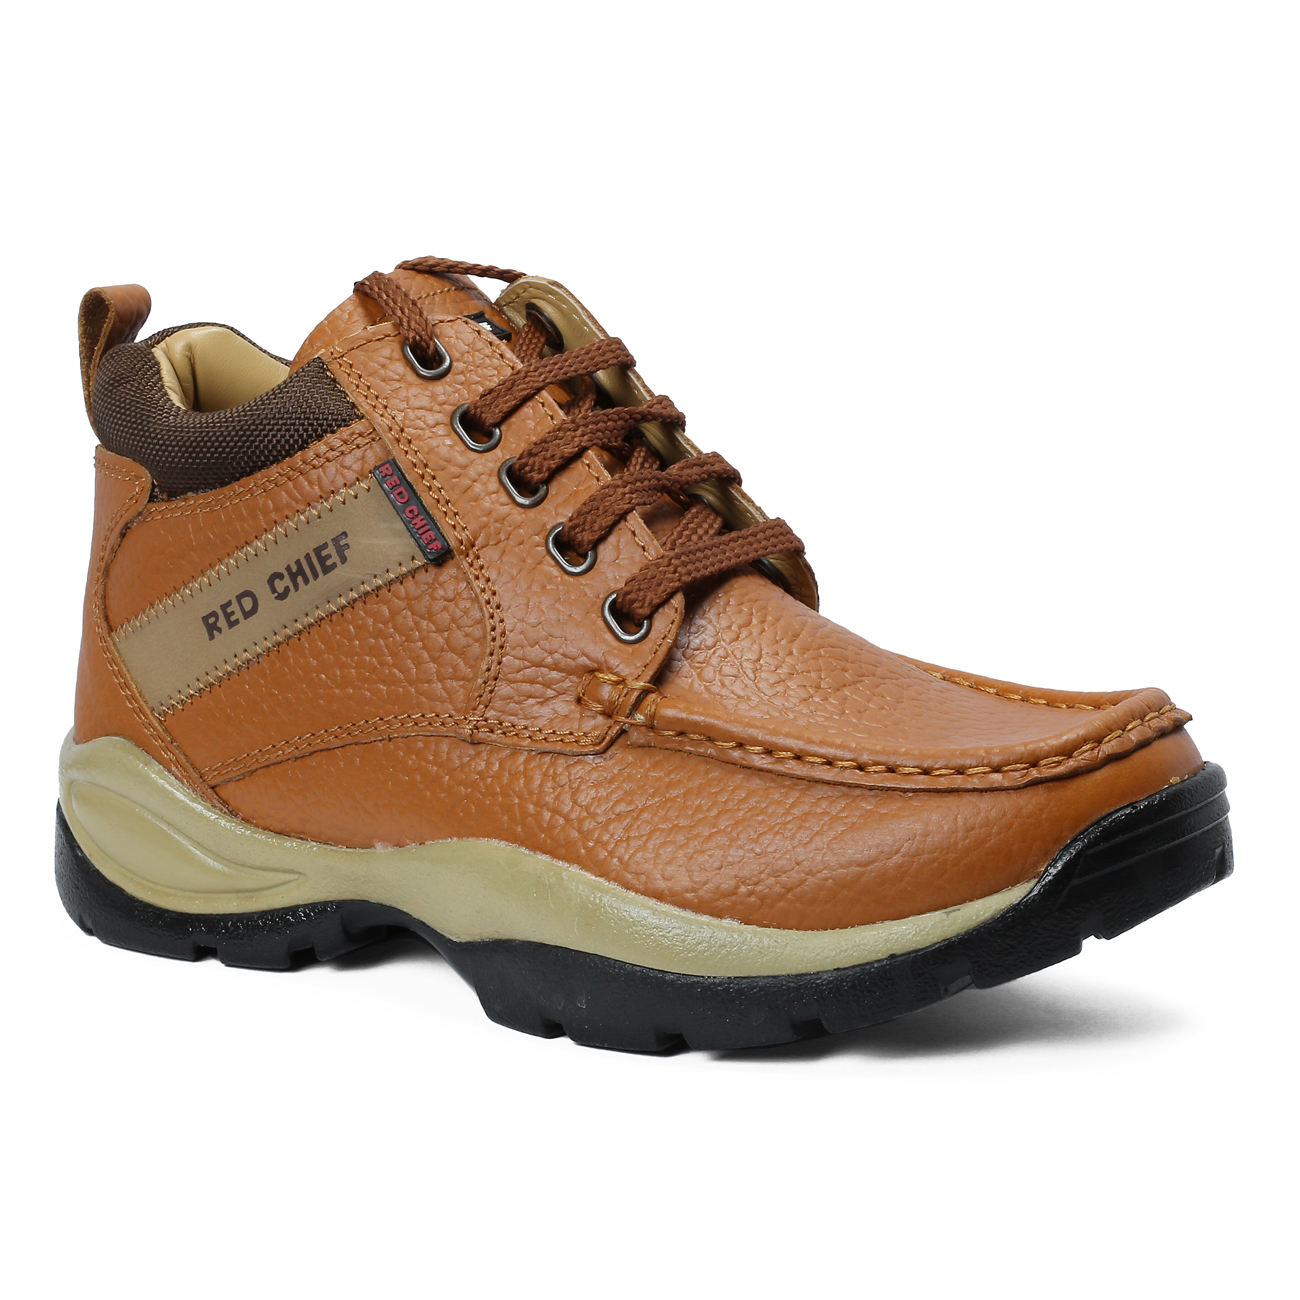 RED CHIEF   RC2051 107 - MENS CASUAL Elephant Tan Boots